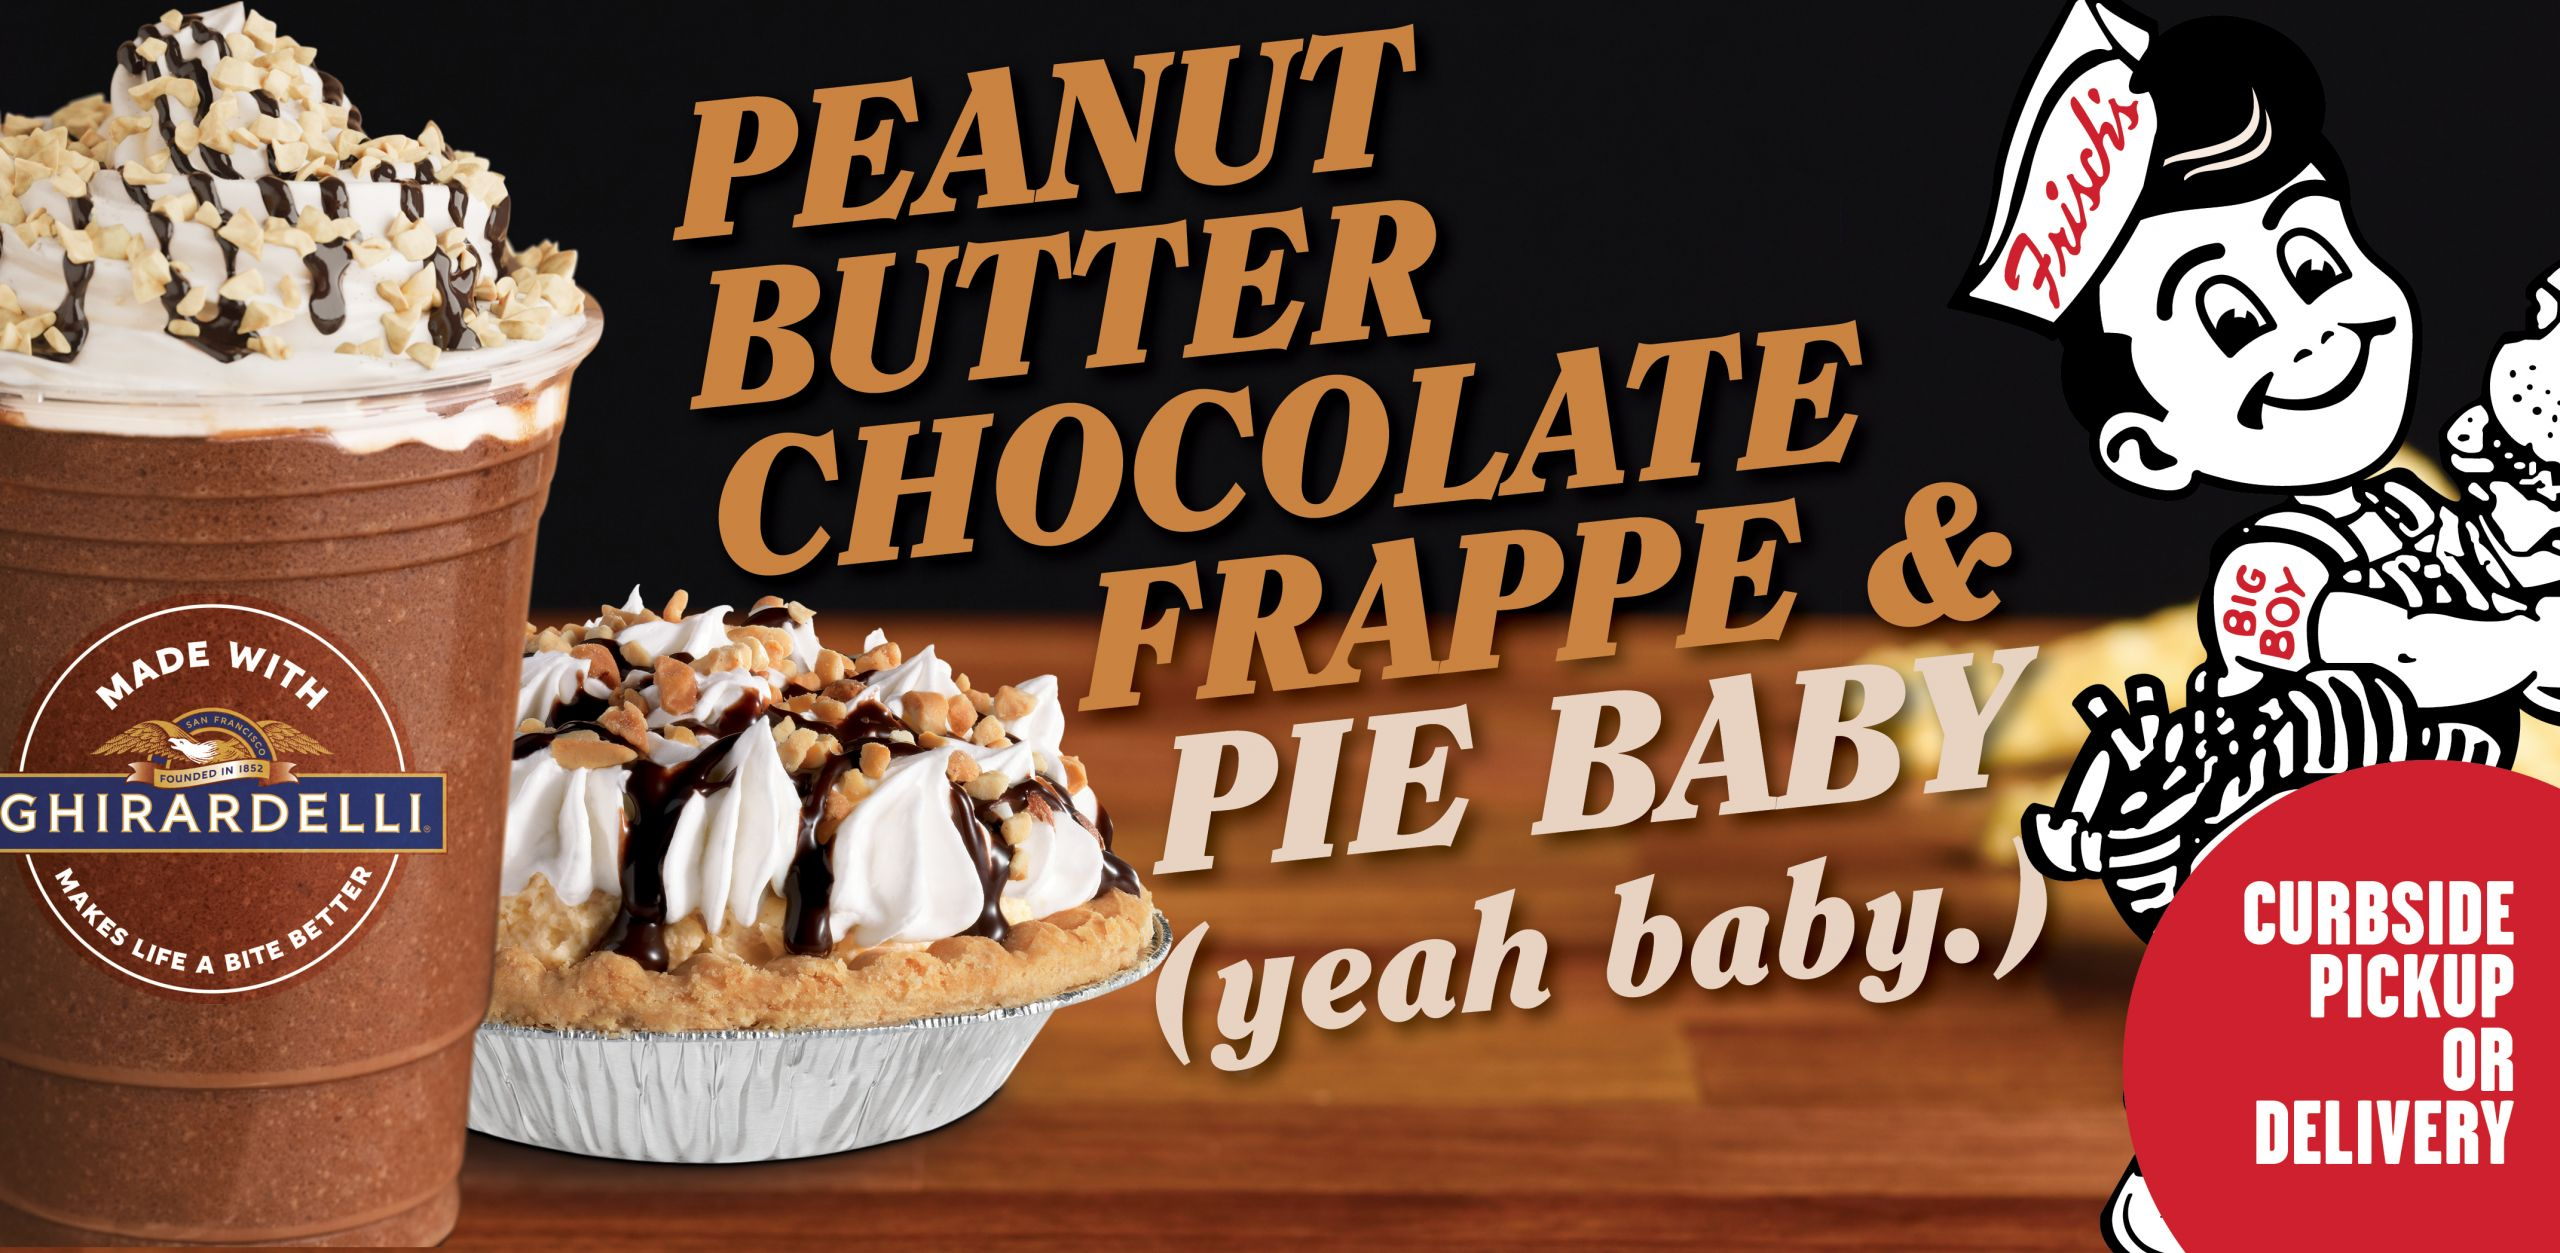 Peanut Butter Chocolate Frappe and Pie Baby